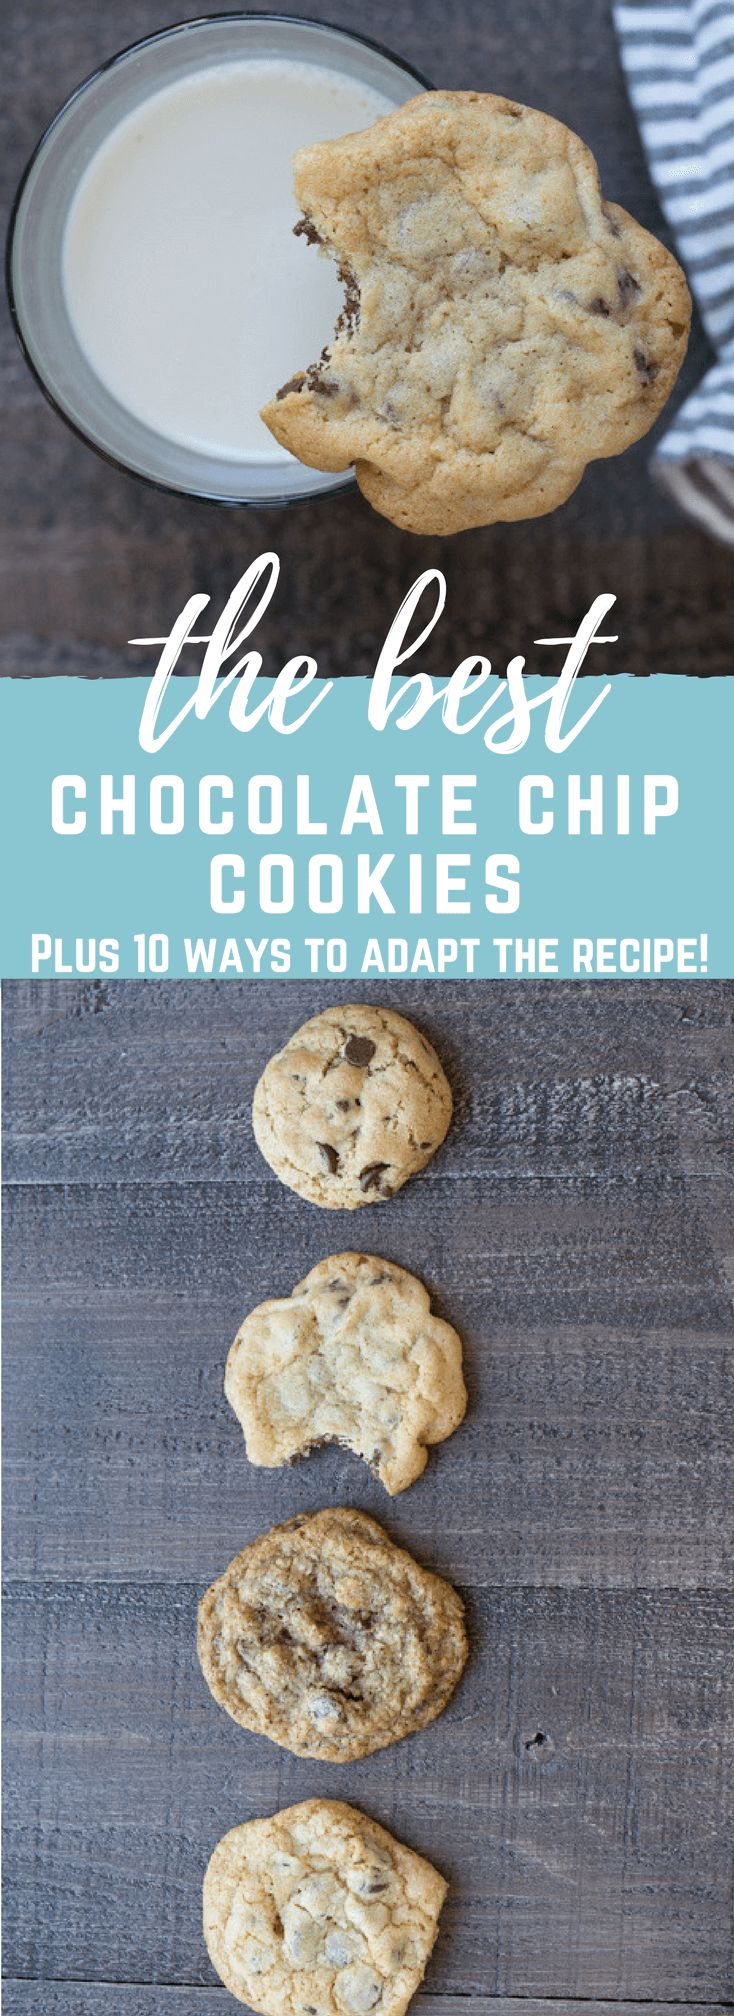 Really, it doesn't get much better than a warm buttery chocolate chip cookie... crispy on the outside and slightly soft in the middle. Get the Best Homemade Chocolate Chip Cookies recipe in your life.